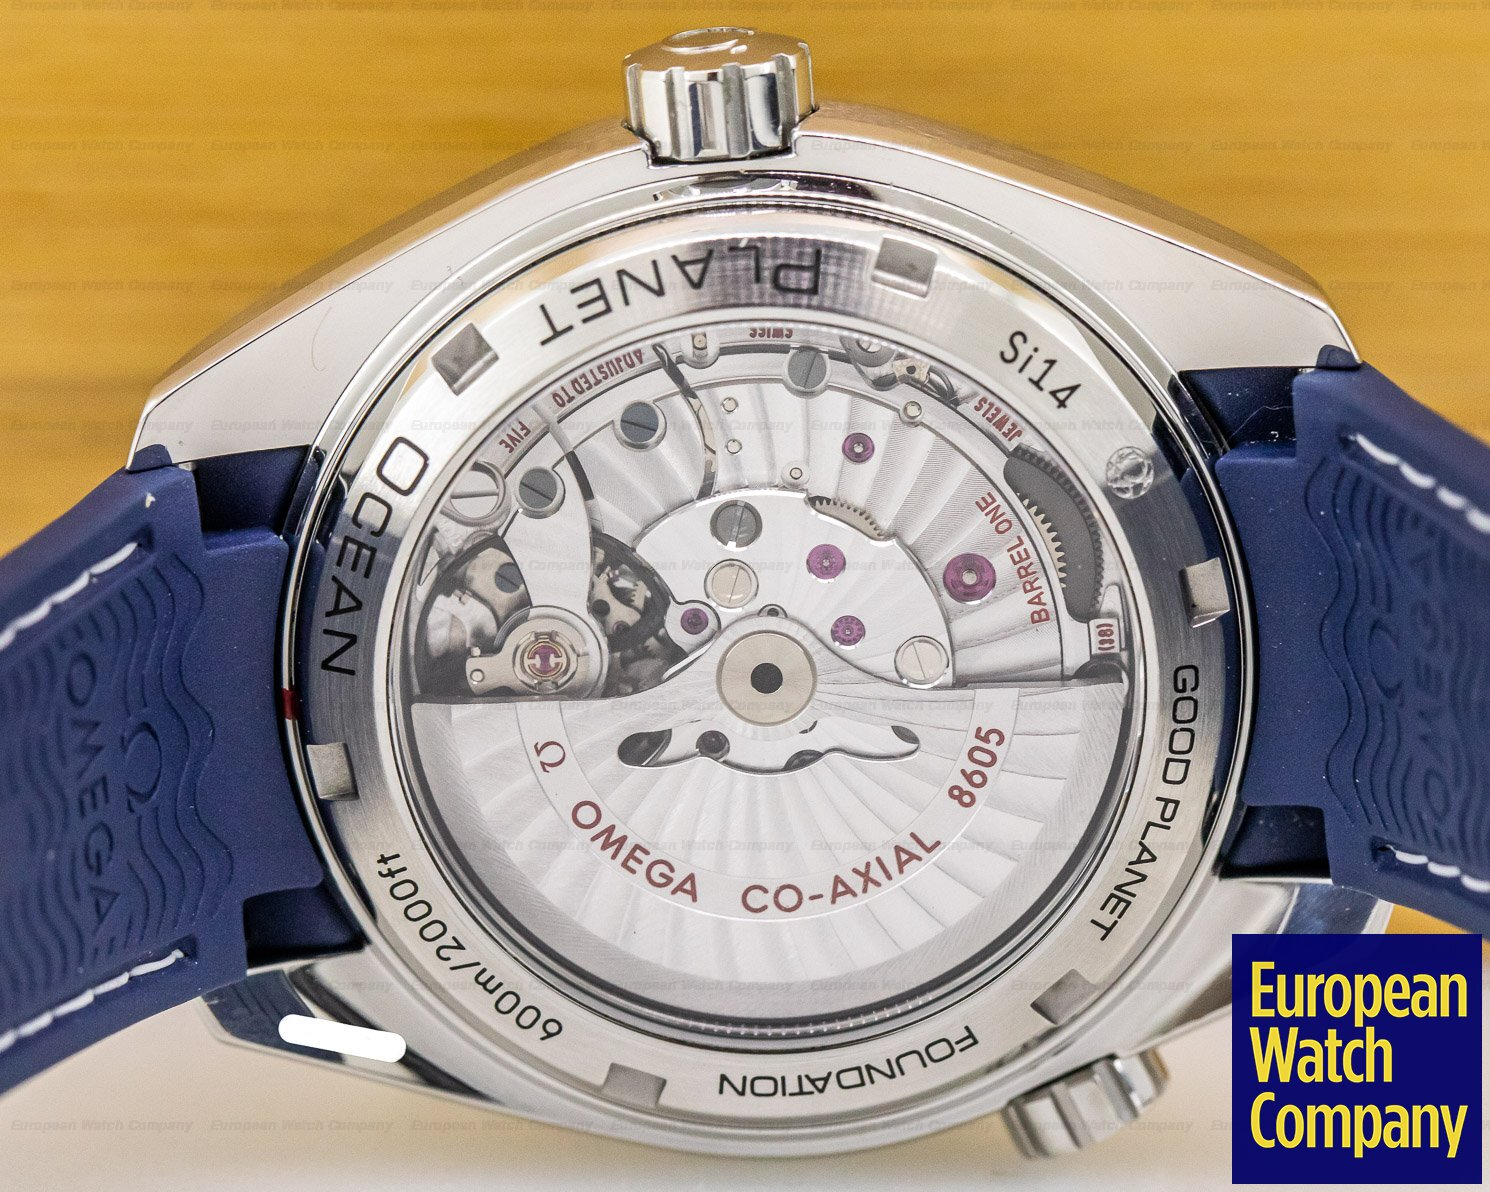 Omega 232.32.44.22.03.001 Seamaster Planet Ocean Good Planet GMT 600M Co-Axial Blue Dial